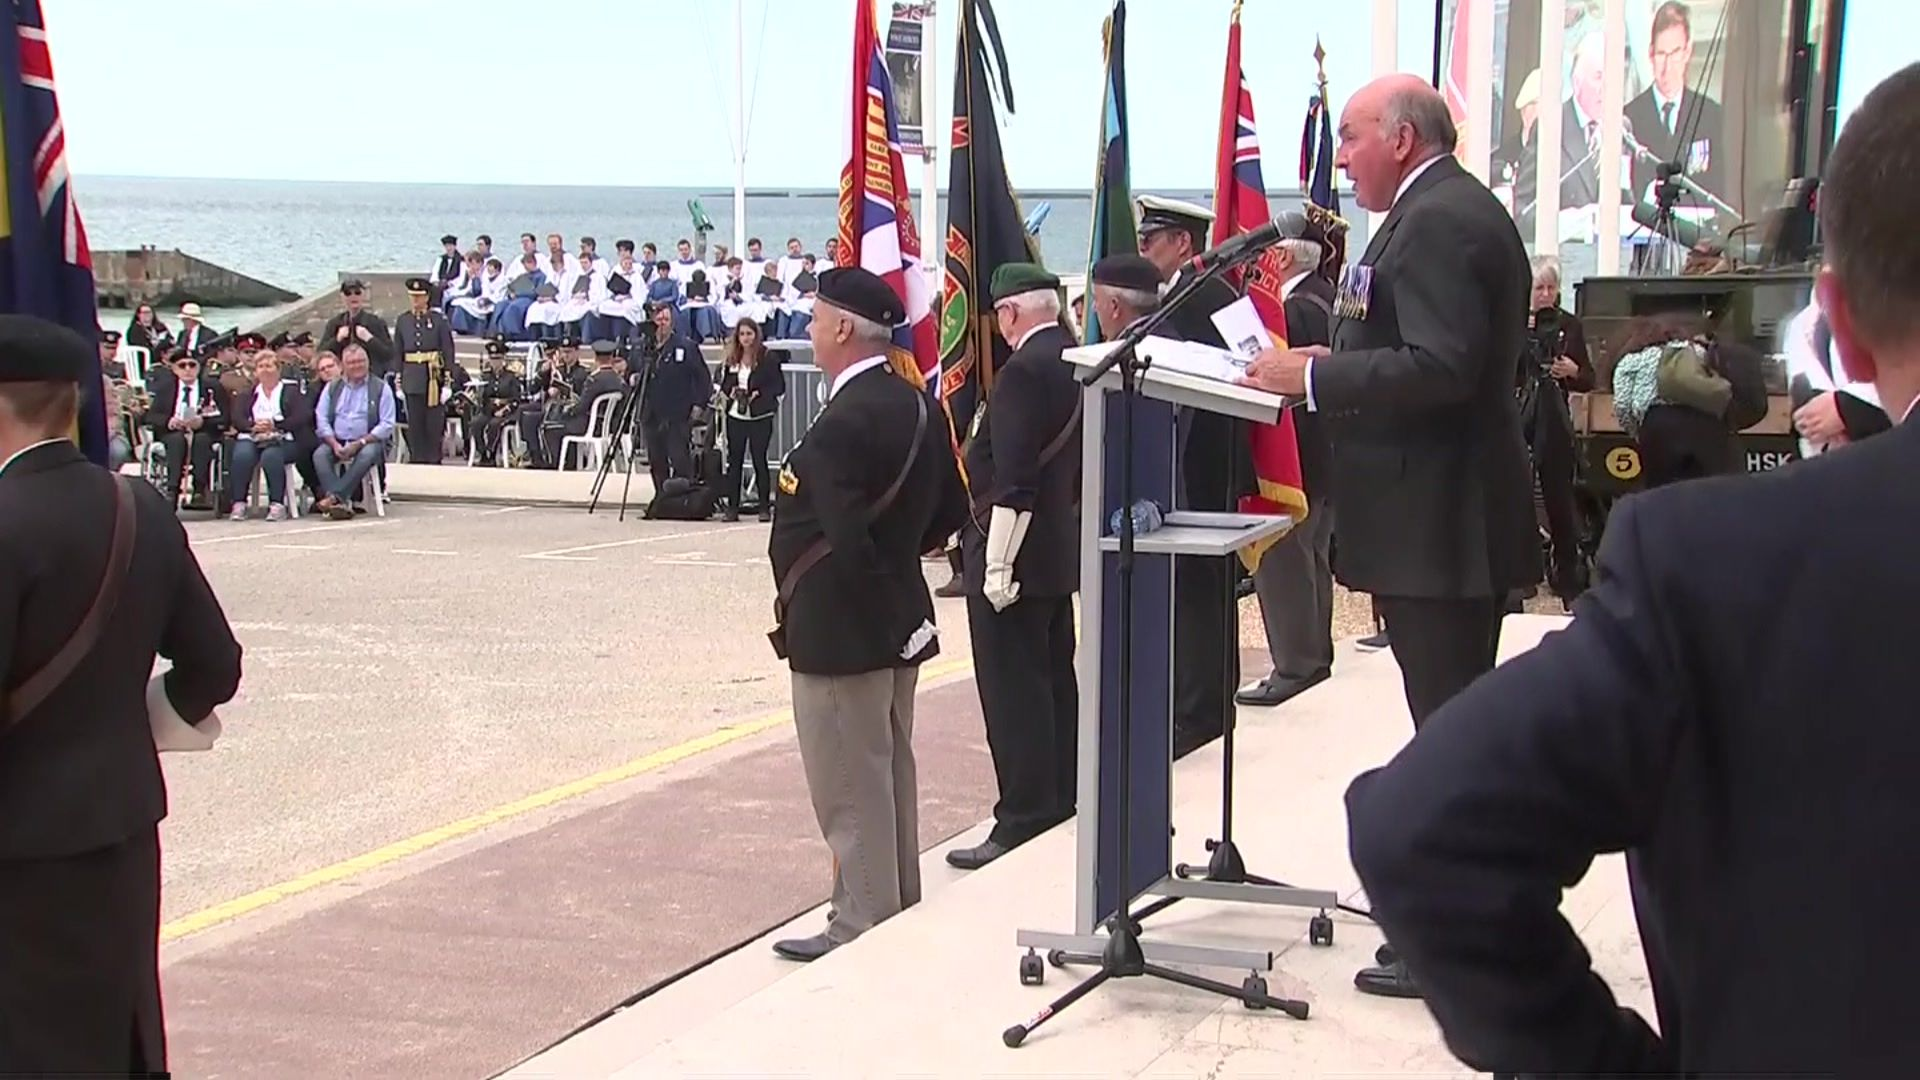 D-day commemorations: Veterans honoured during Normandy